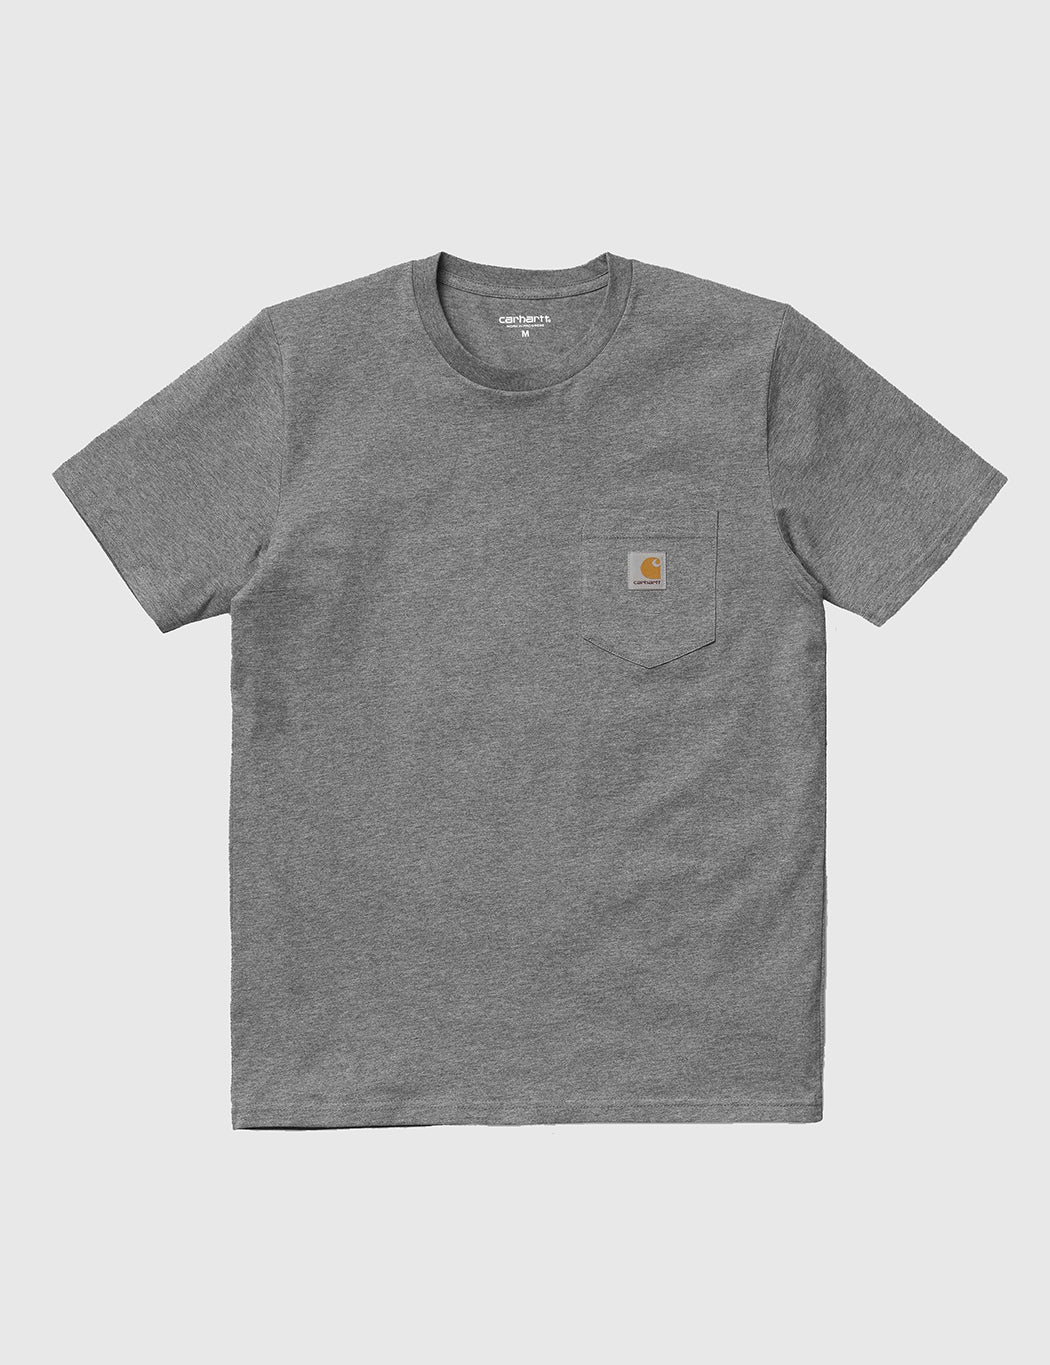 Carhartt Pocket T-Shirt - Dark Grey